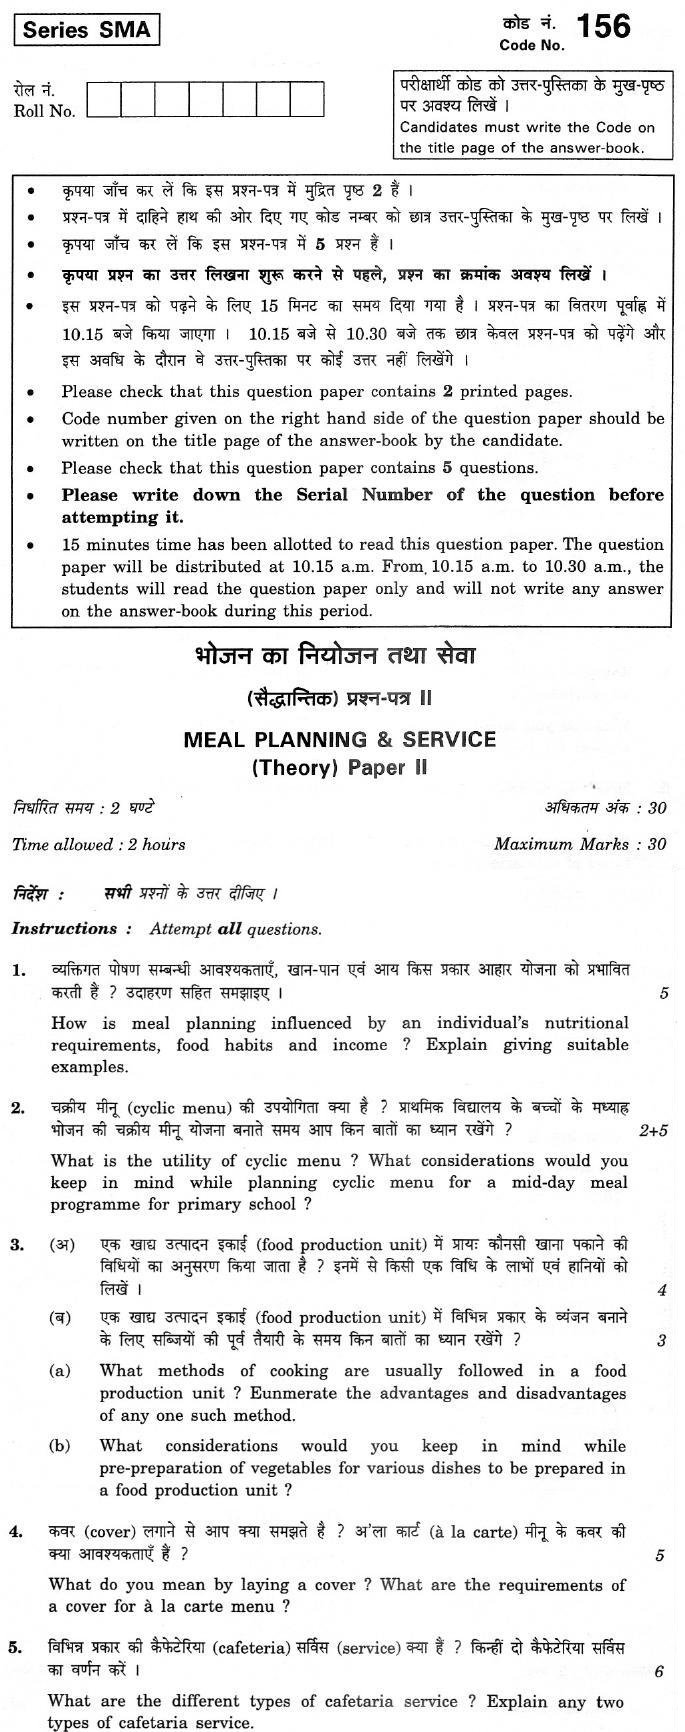 CBSE Class XII Previous Year Question Paper 2012 Meal Planning & Service